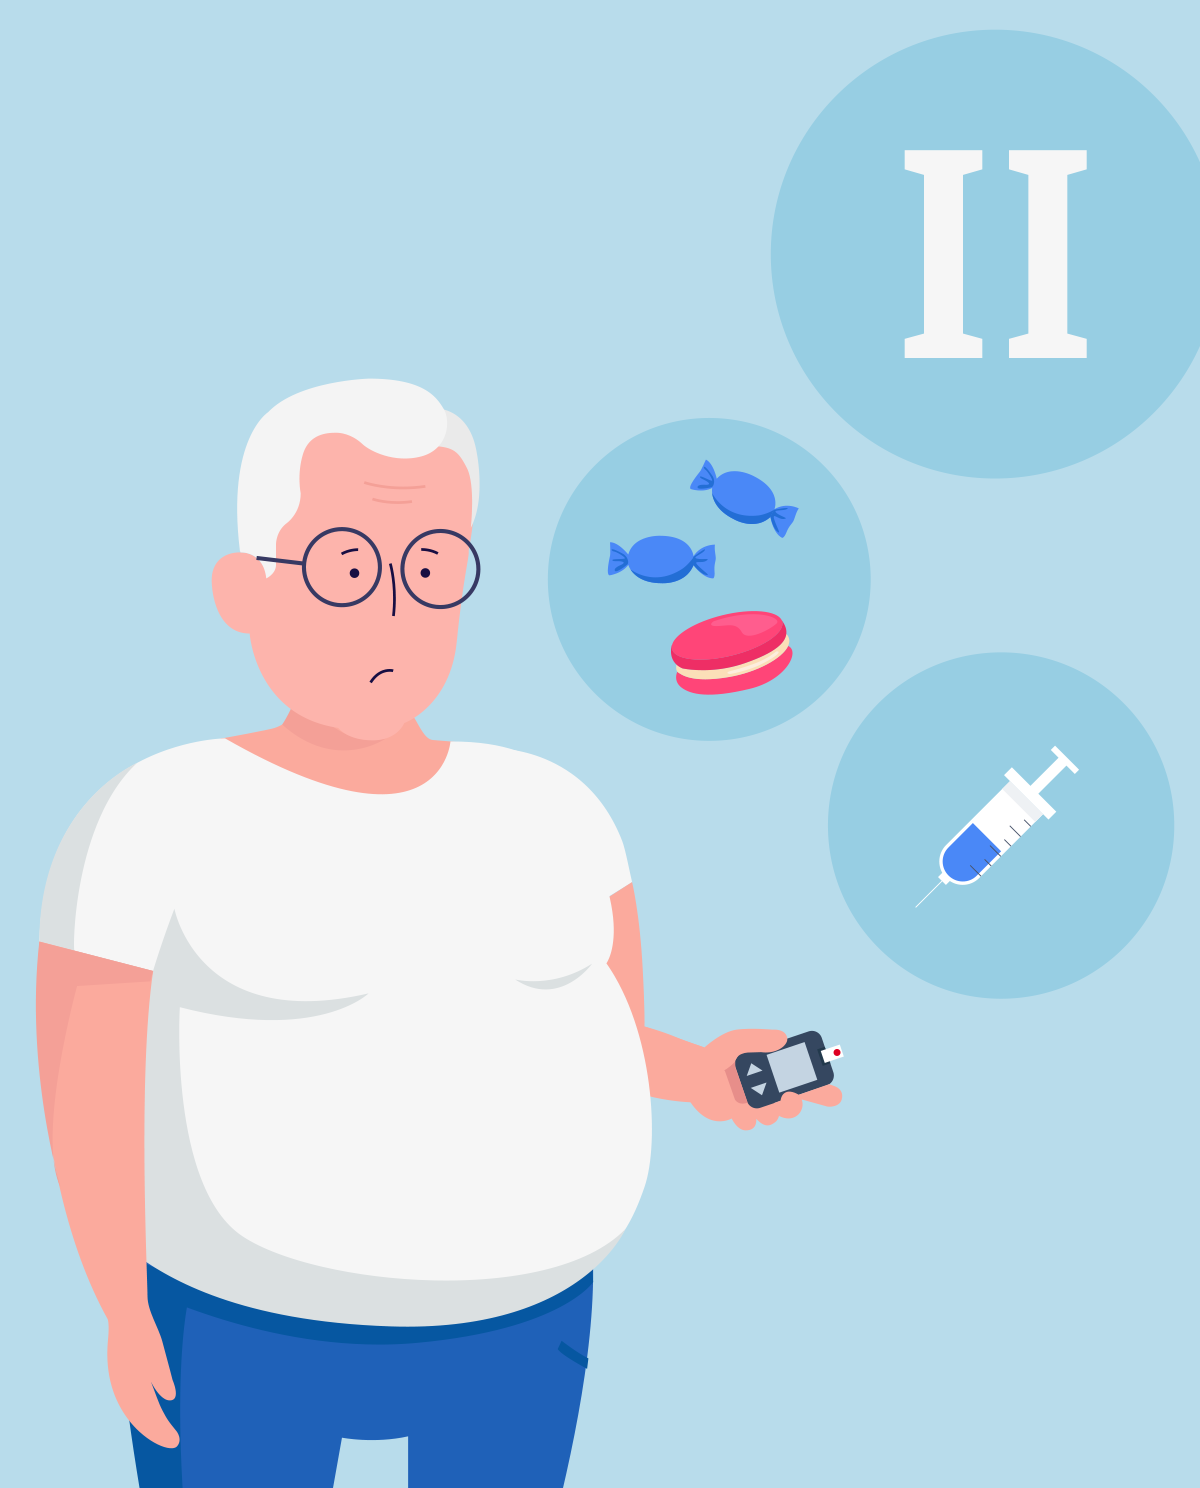 Type 2 diabetes - causes, symptoms and treatment